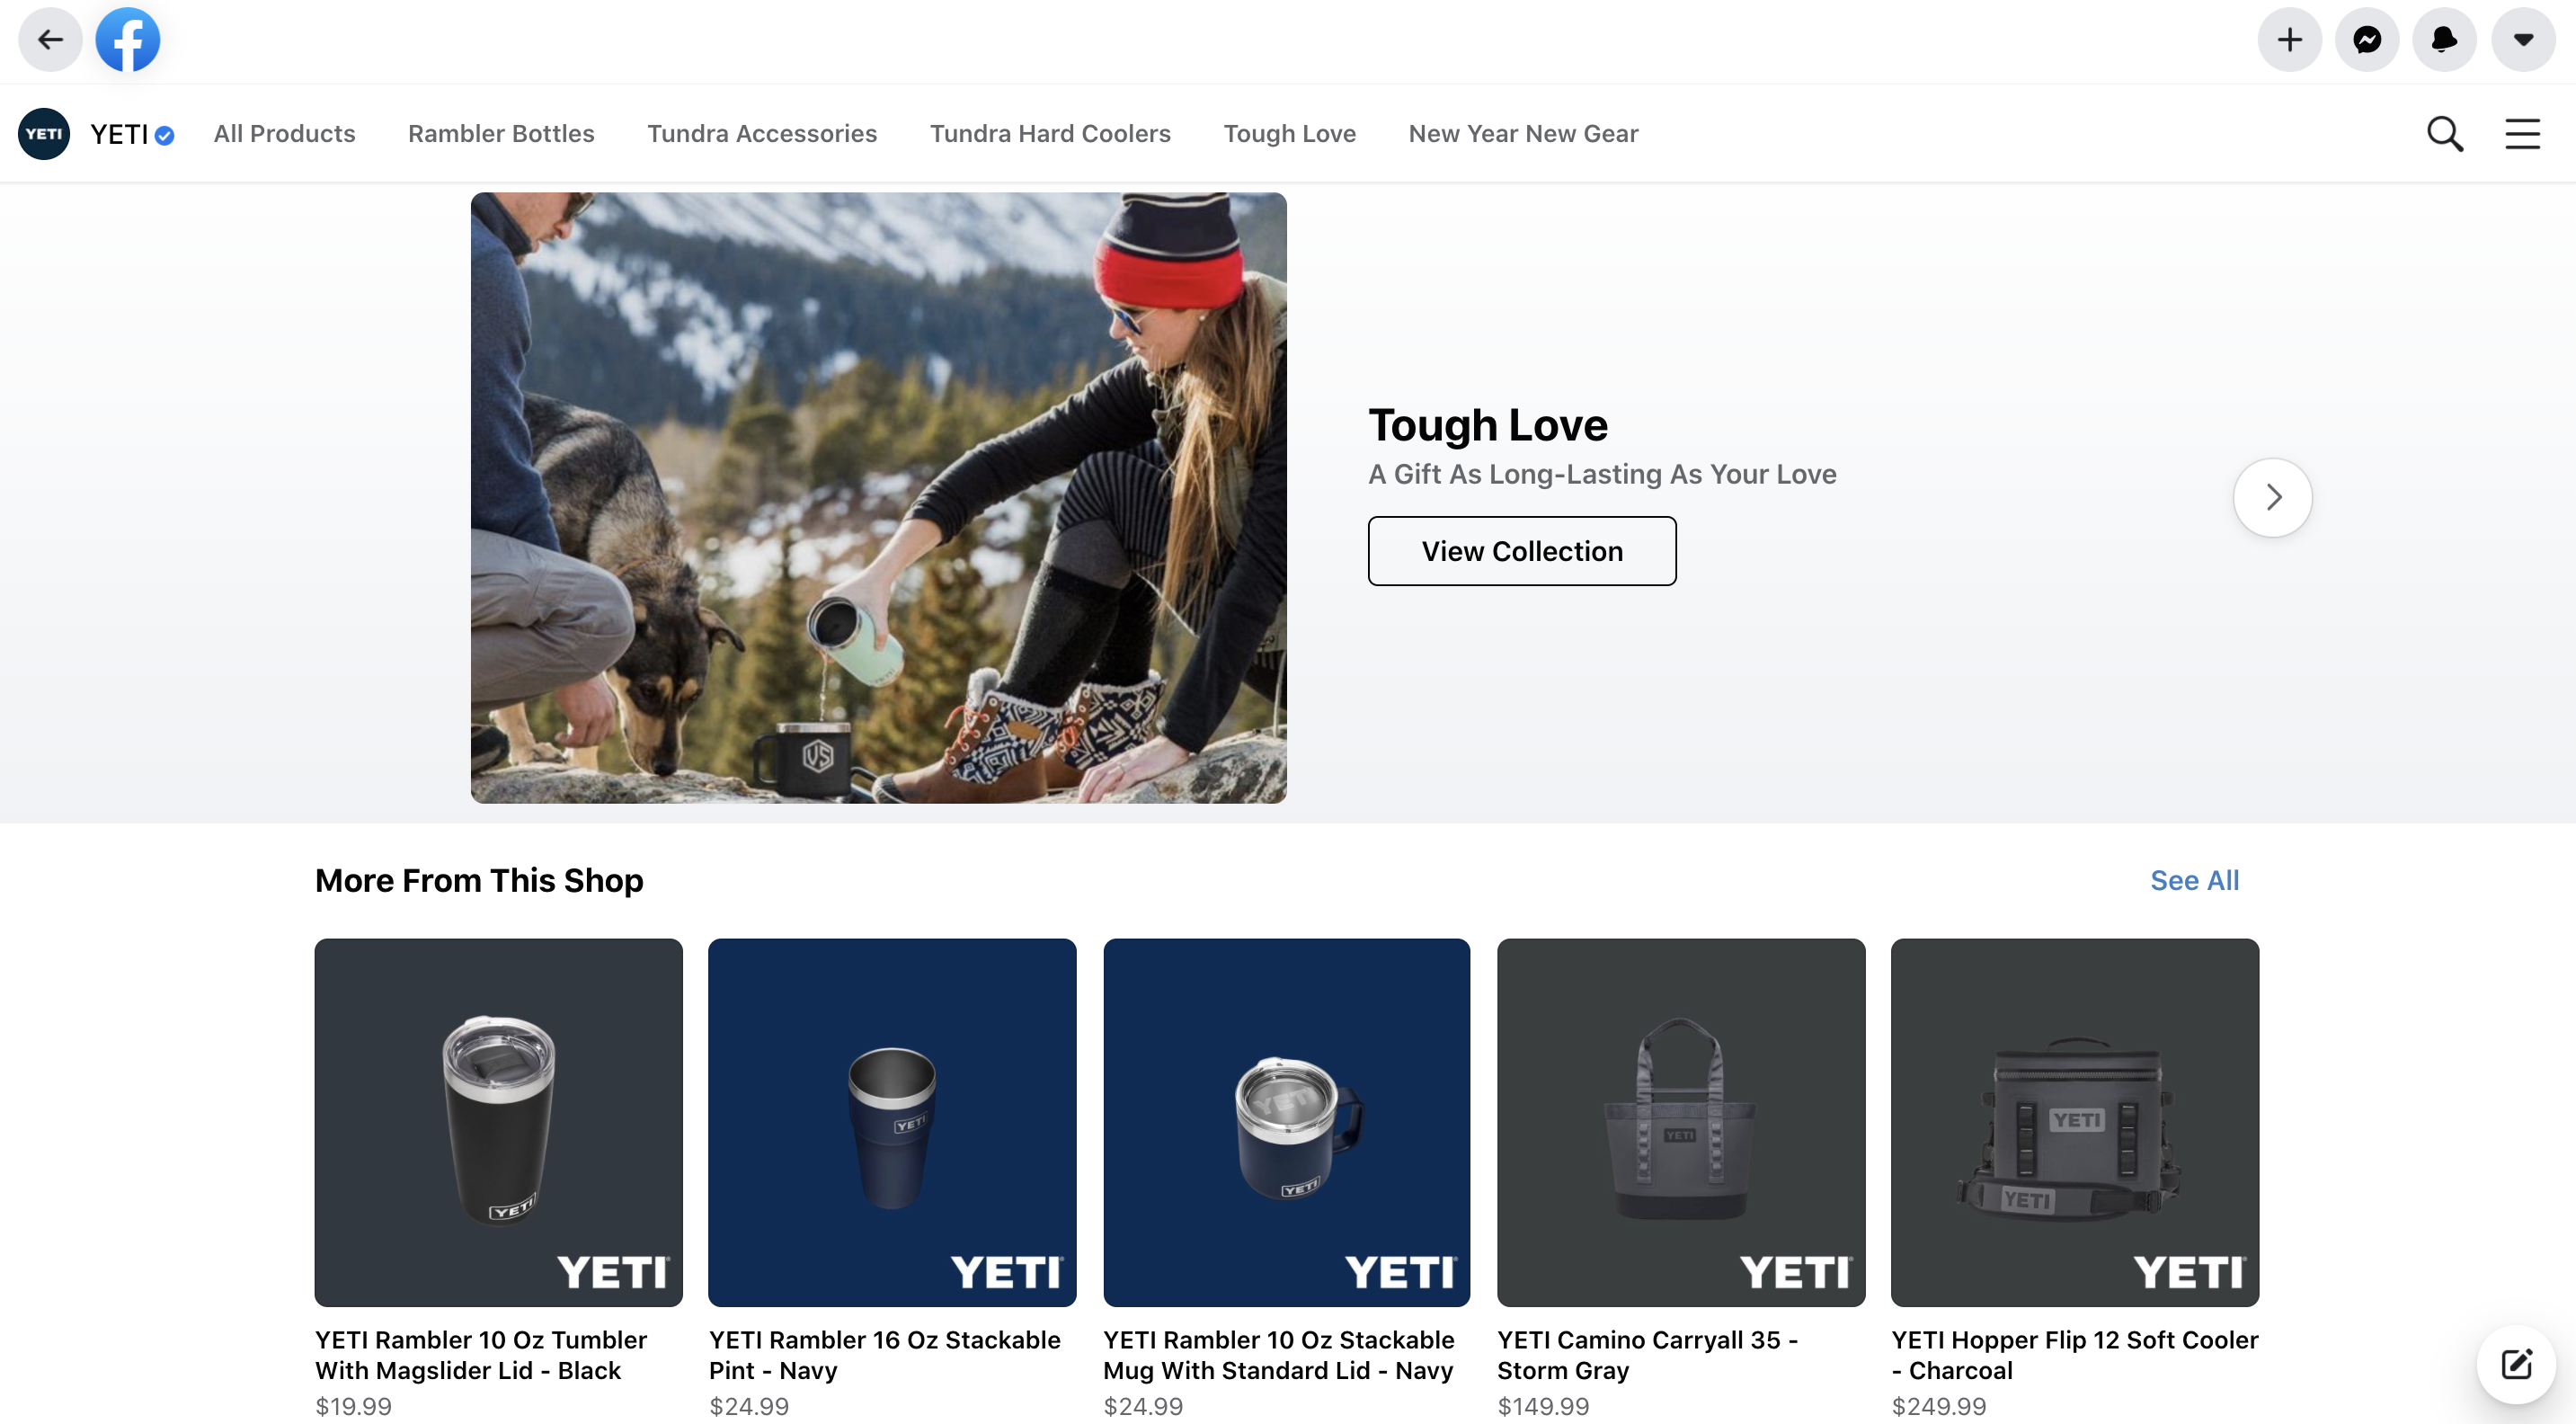 Screenshot of YETI's Facebook shop